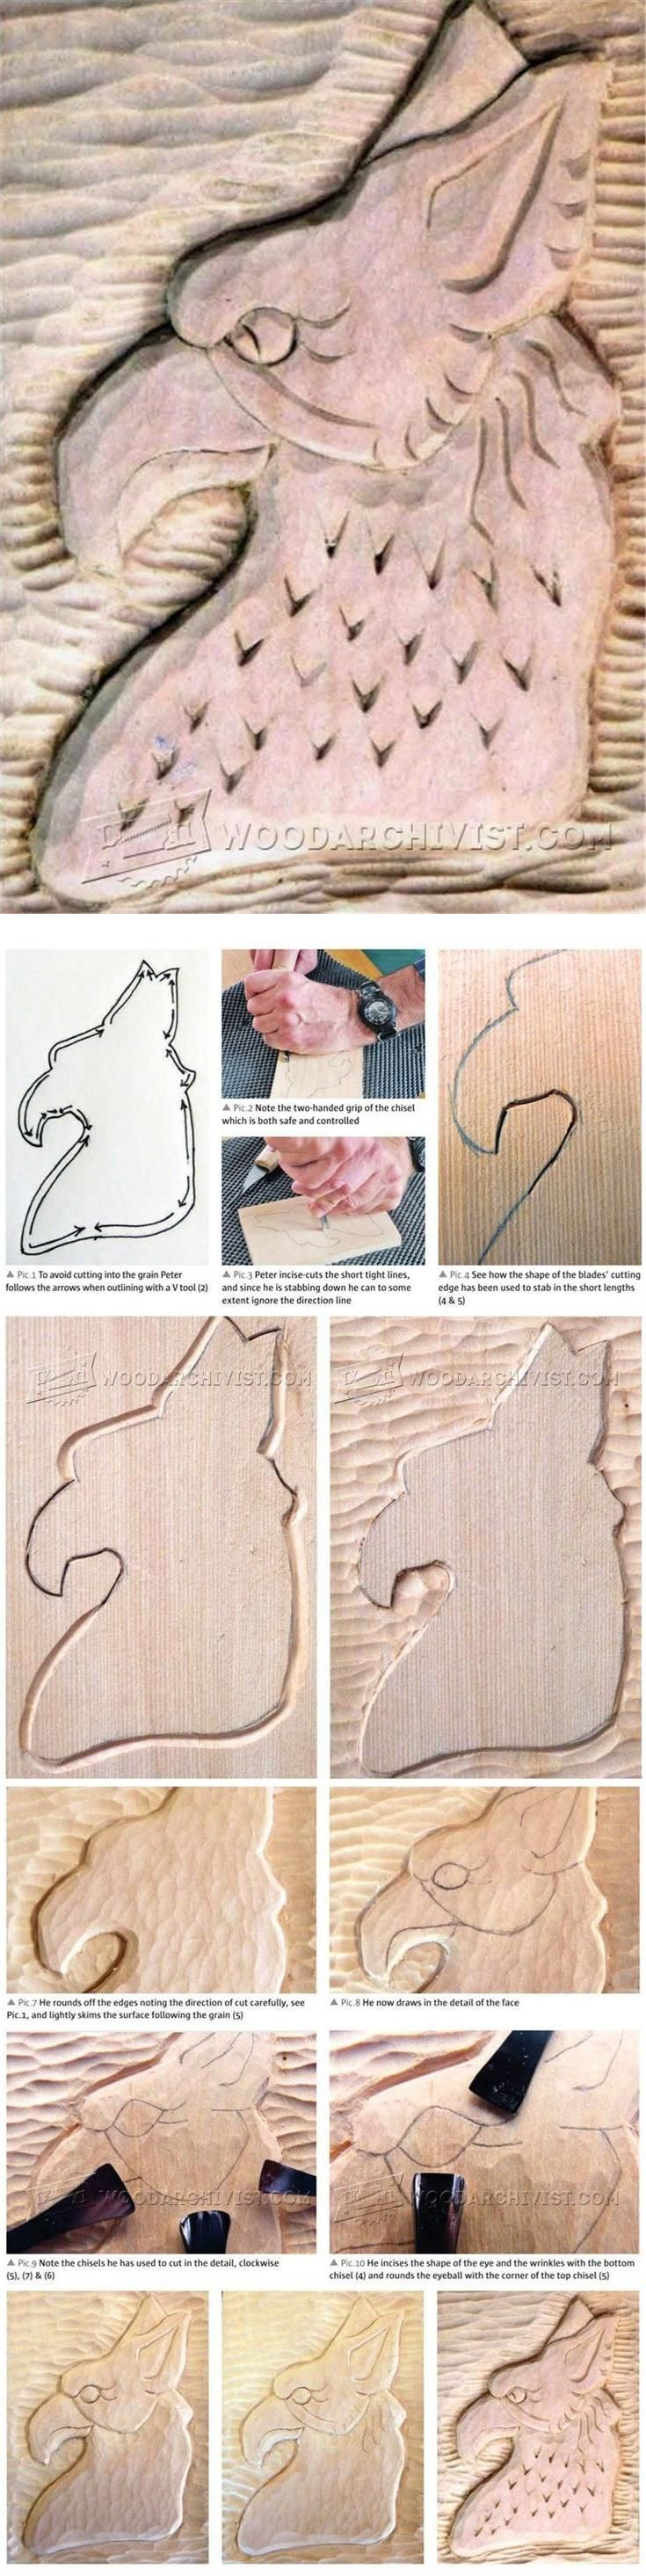 Relief Carving Techniques - Wood Carving Patterns and Techniques | WoodArchivist.com